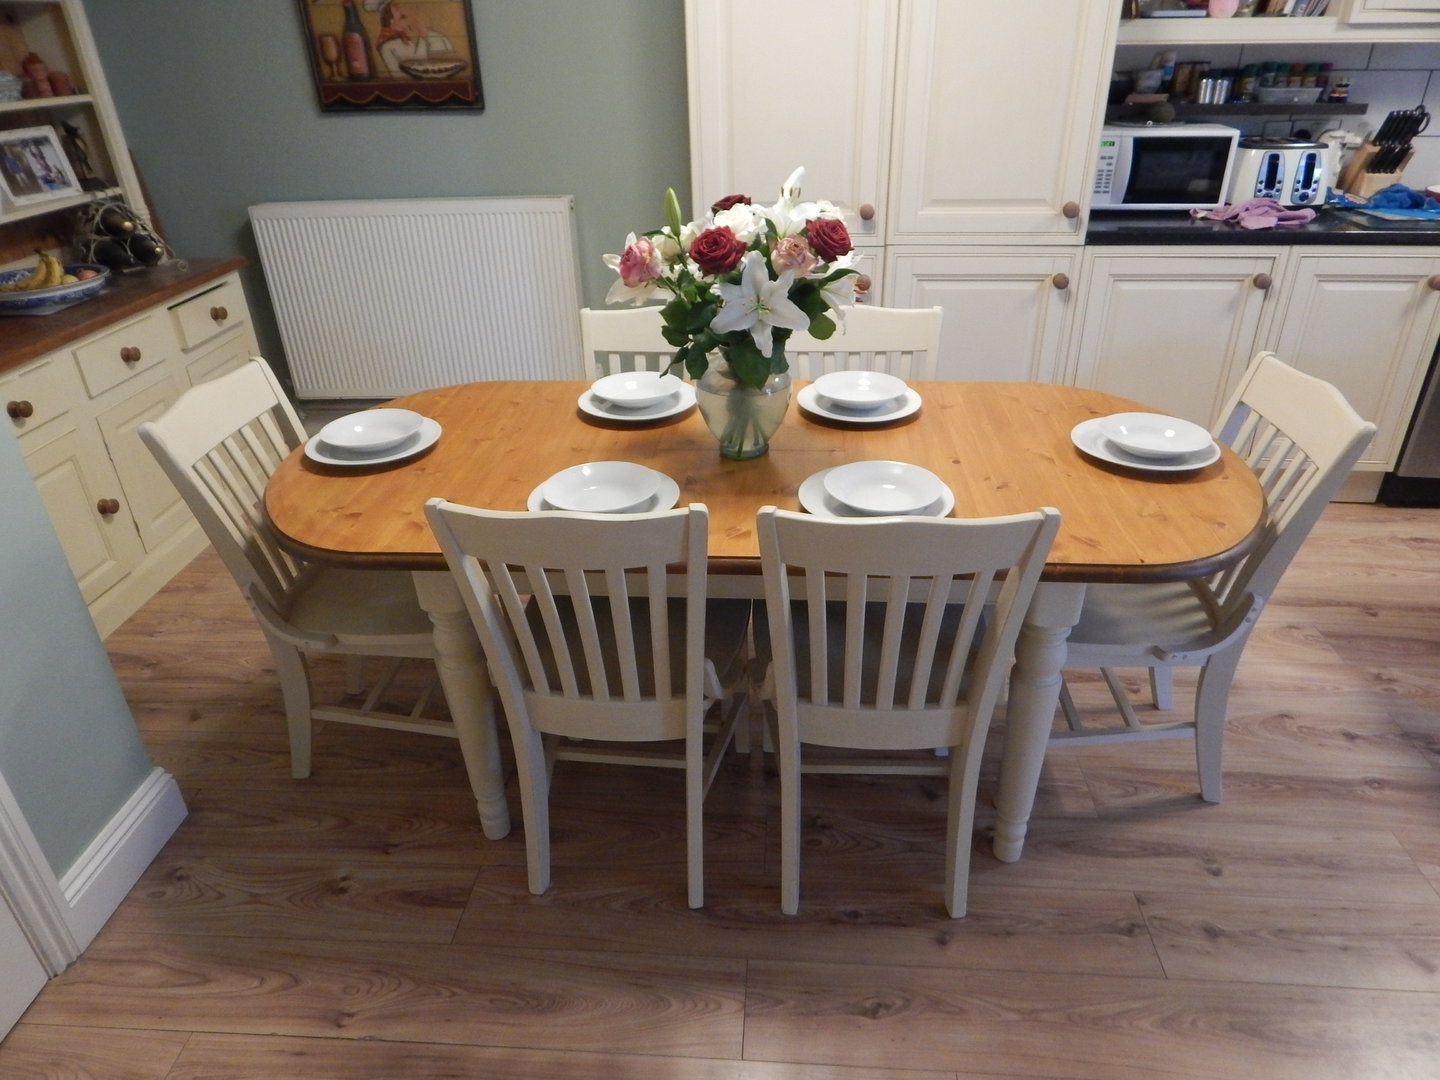 Widely Used Extending Dining Tables And 6 Chairs For Shabby Chic , Ducal Pine Extending Dining Table & 6 Chairs (View 23 of 25)